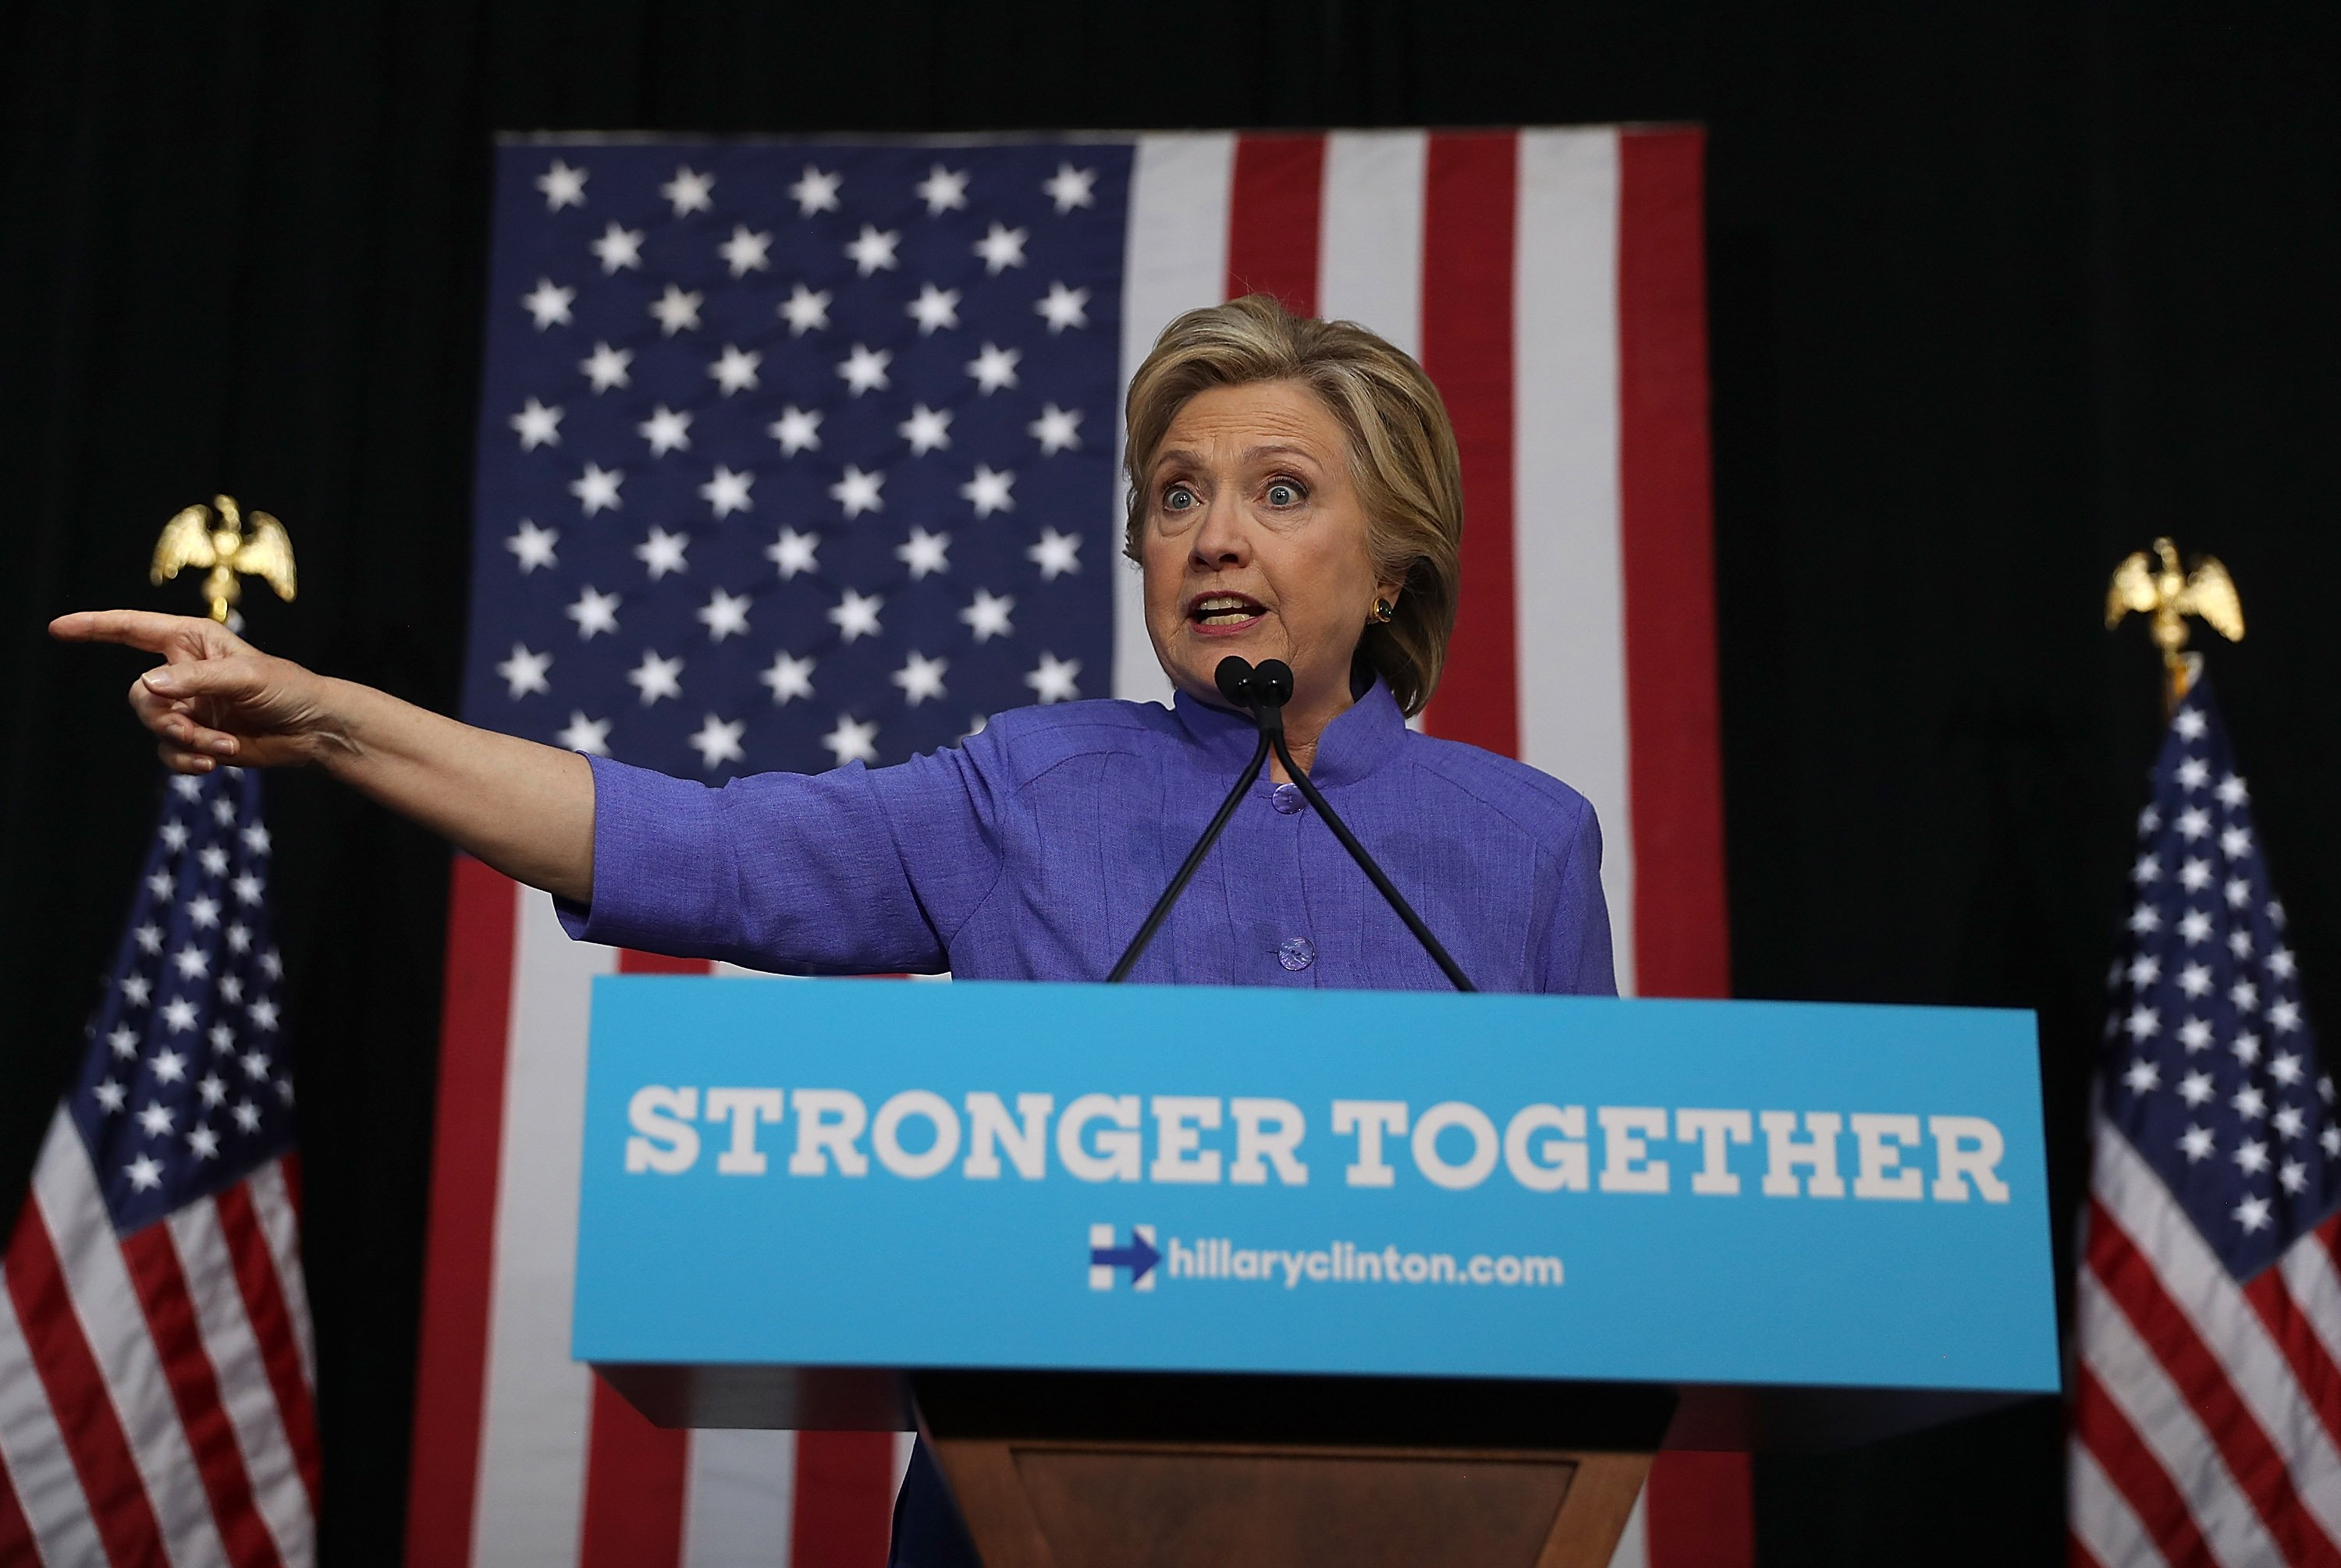 Newfound Emails Unlikely to Trigger Clinton Charges: Experts